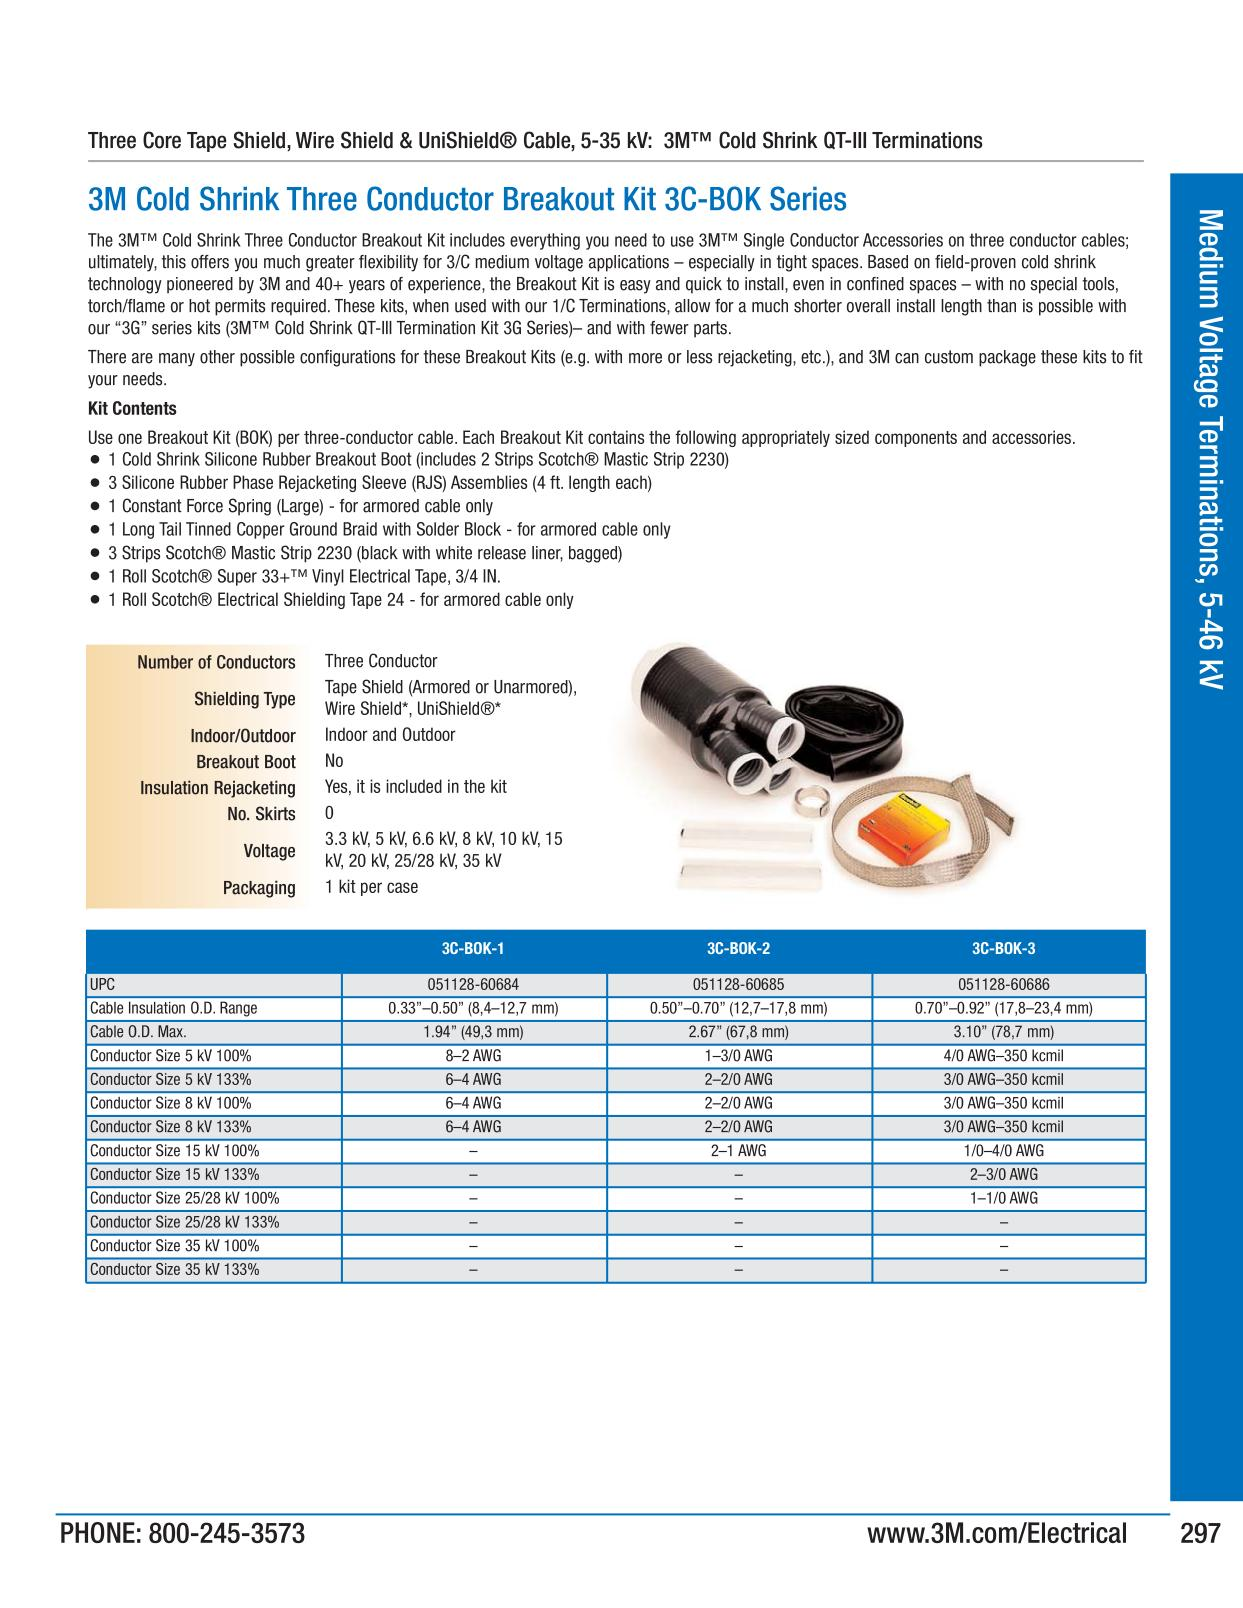 Medium voltage terminations 5 46 kv 3m electrical products page 299 catalogs greentooth Gallery